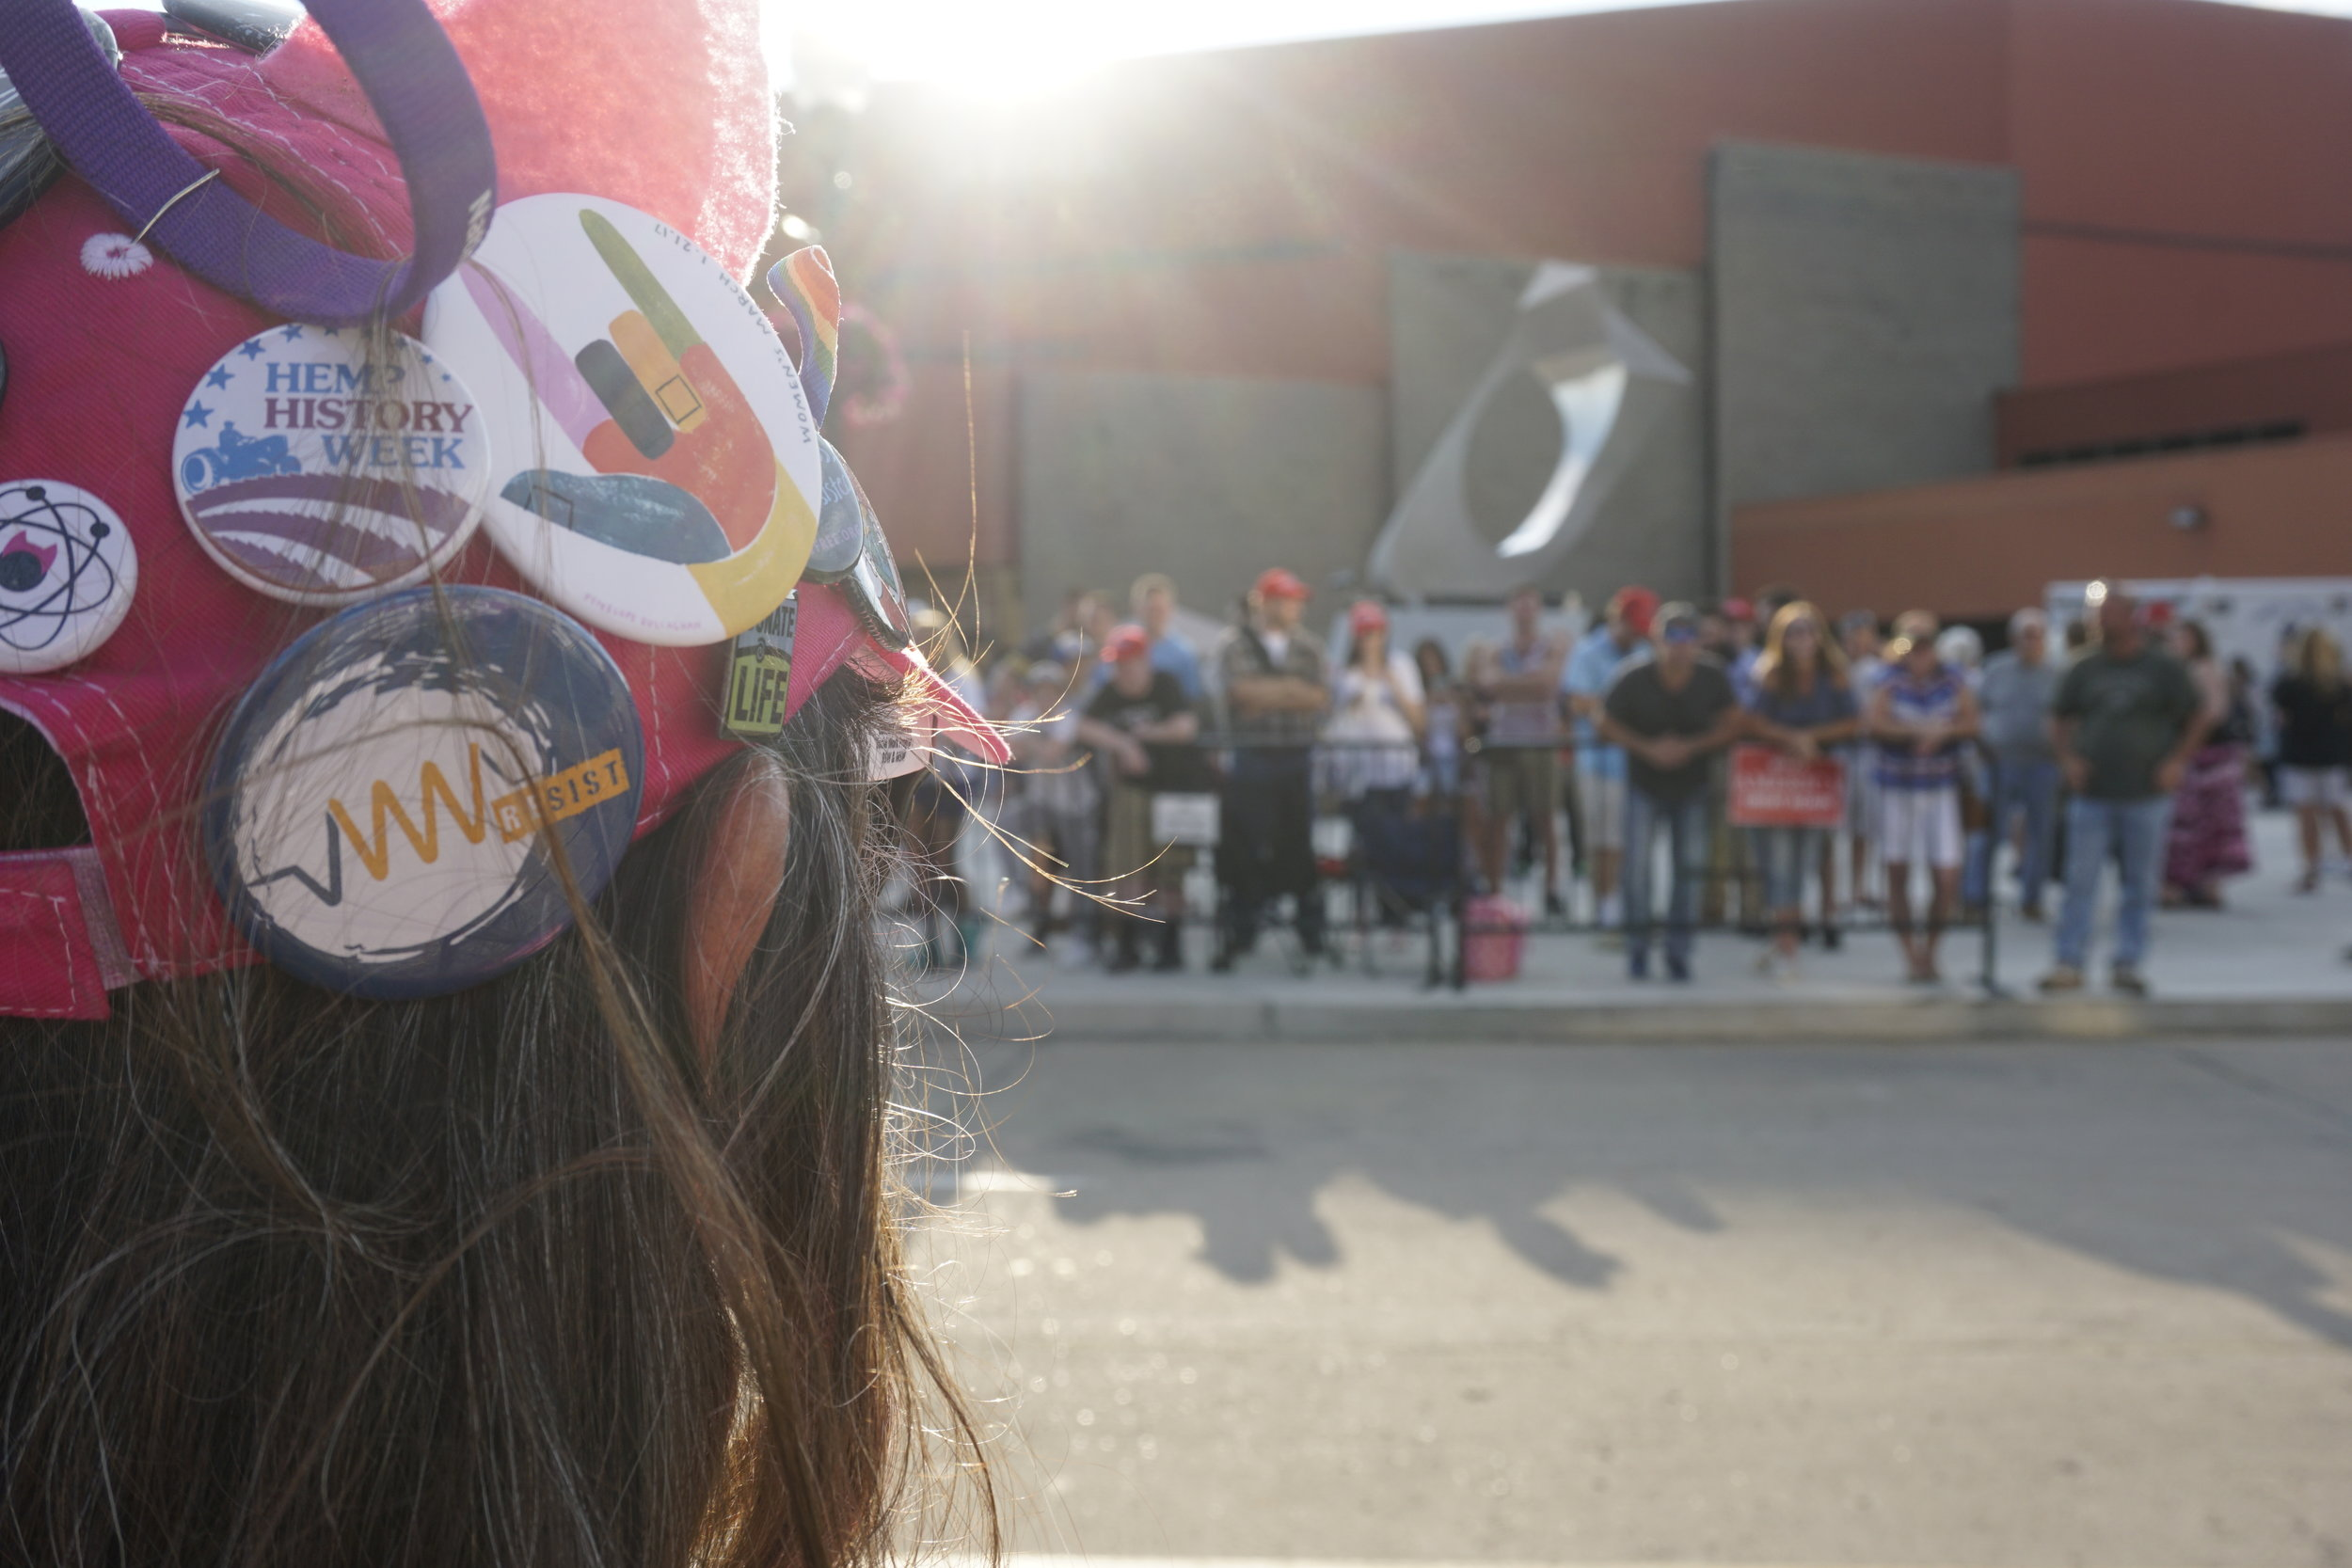 protester hat close up2.JPG